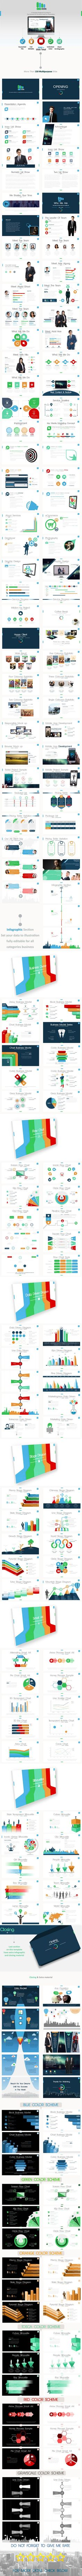 DZIG – Multipurpose Power Point Template (PowerPoint Templates)